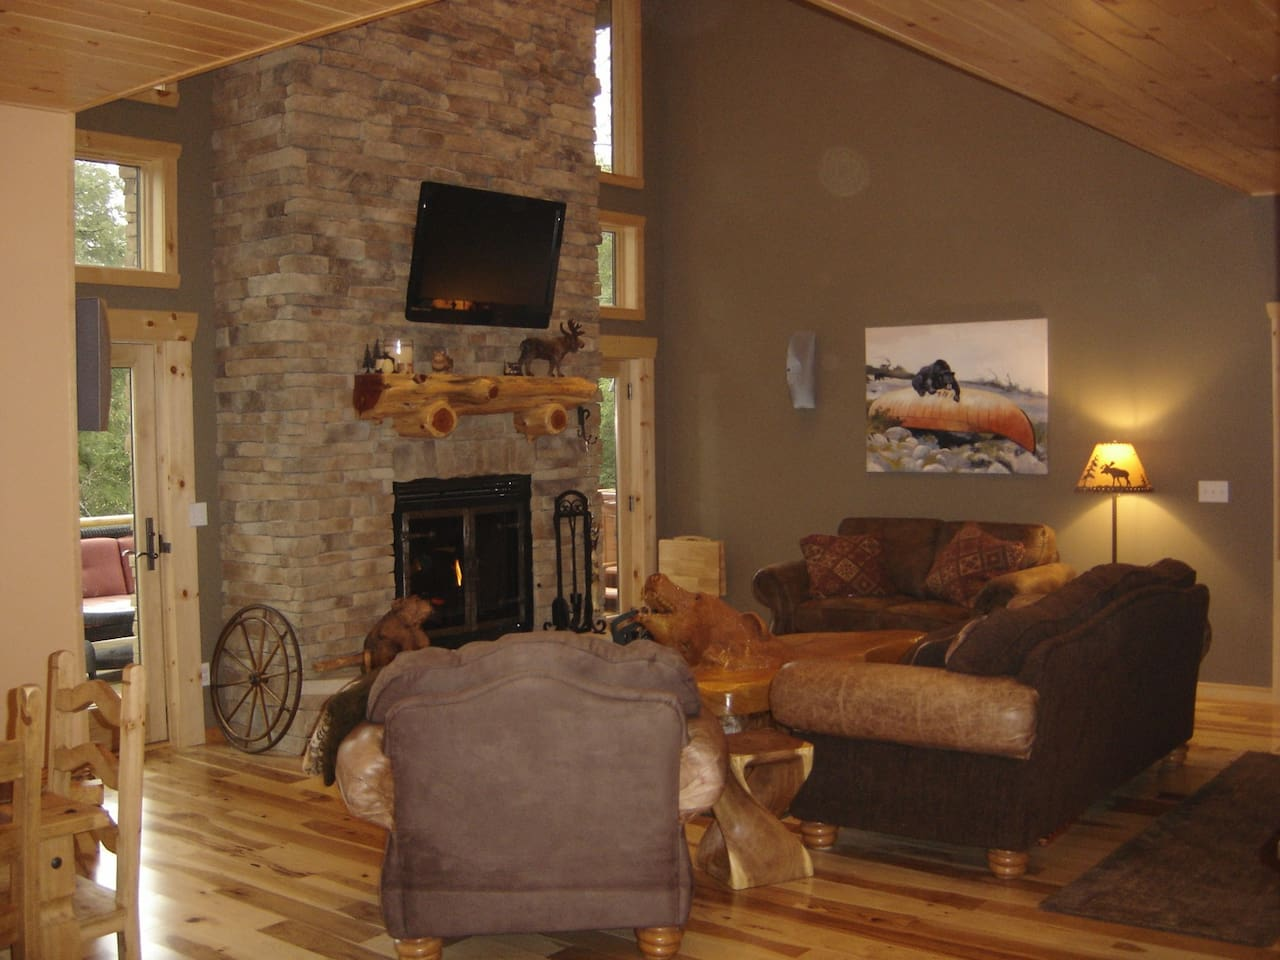 lazybearlodge secluded u0026 green xterior fireplace nature lodges